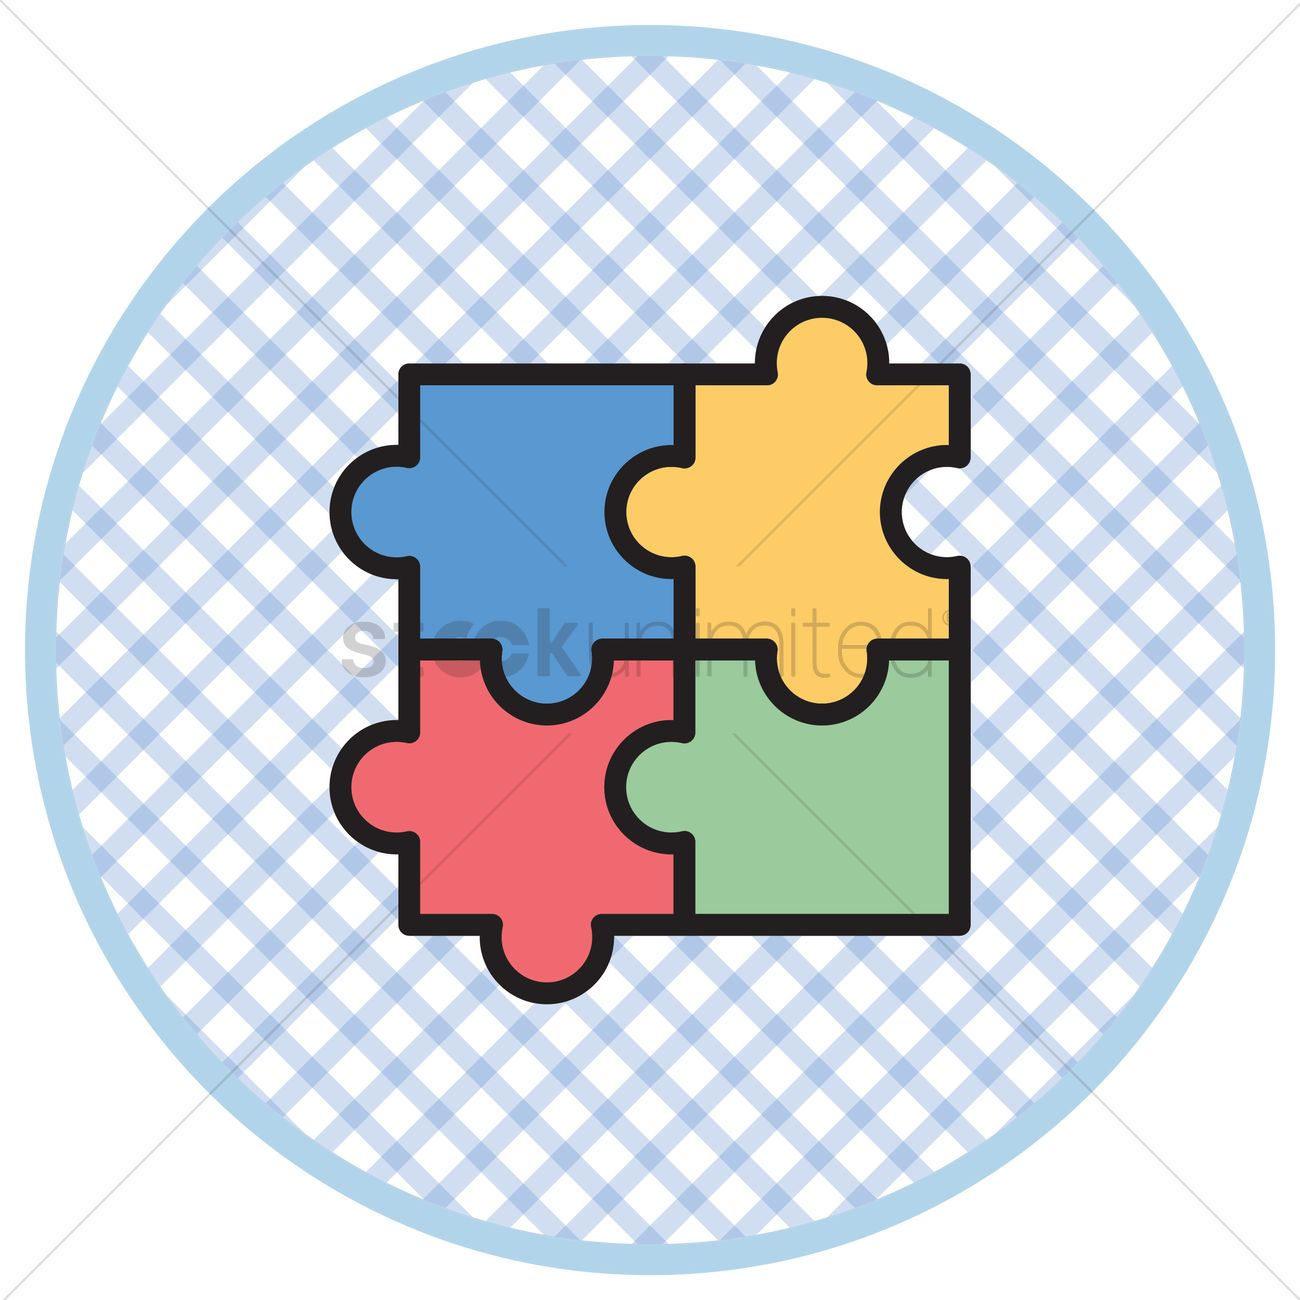 Free Jigsaw puzzle Vector Image - 1303018 | StockUnlimited